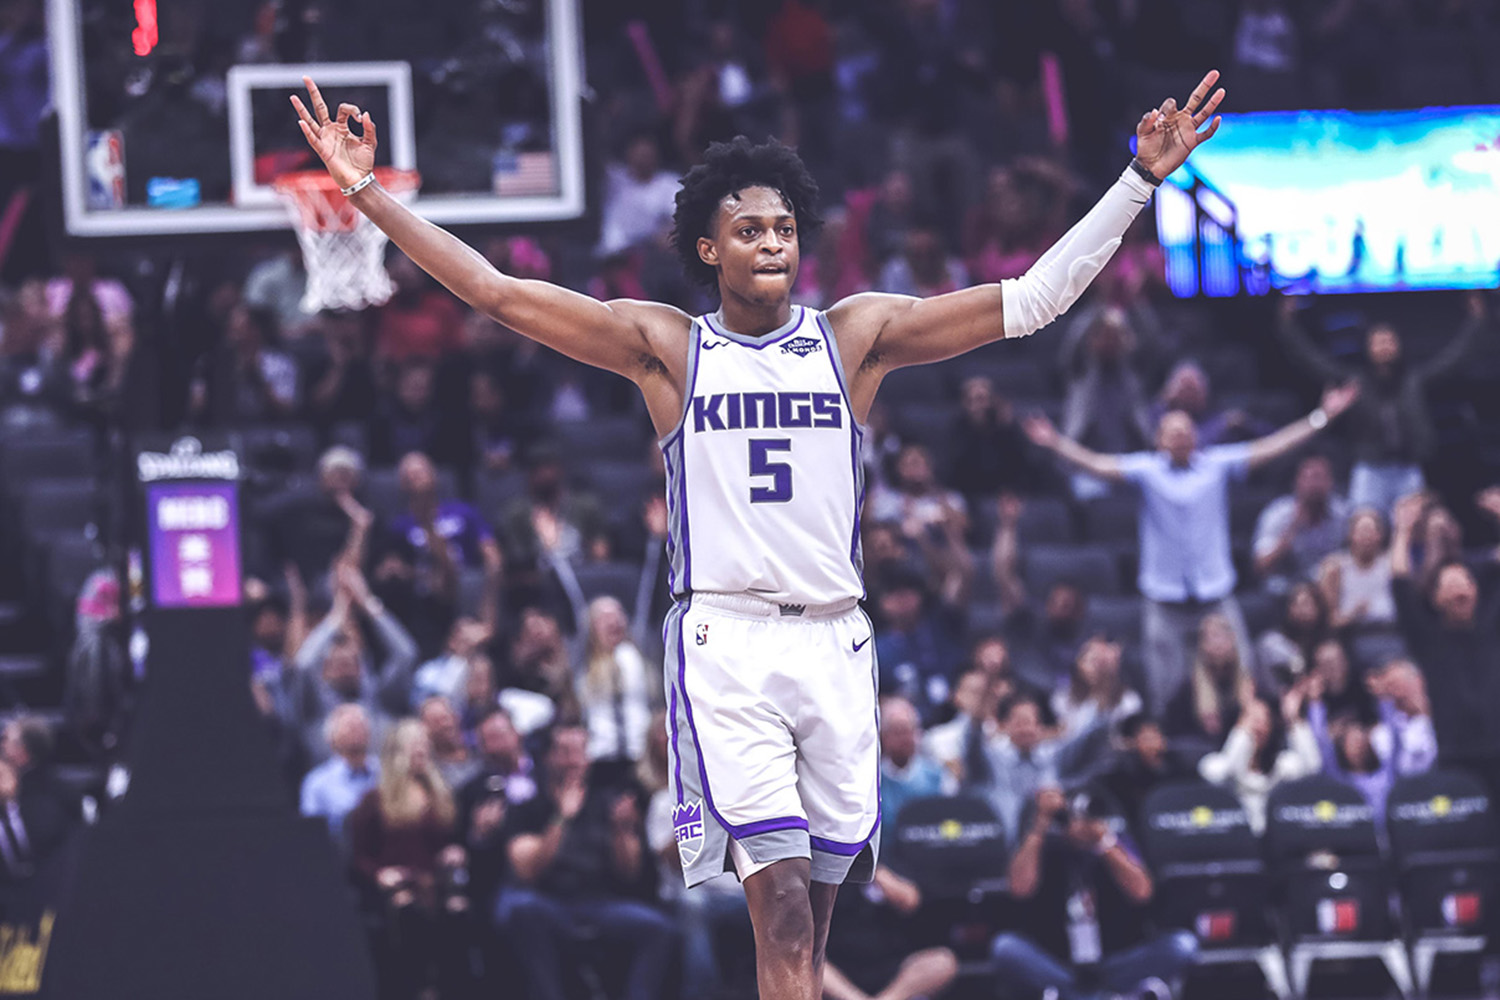 9c206fbf5 The Kings opened the 2018-19 season at Golden 1 Center versus the Utah  Jazz. The highly anticipated start of the season was finished off by a  performance ...